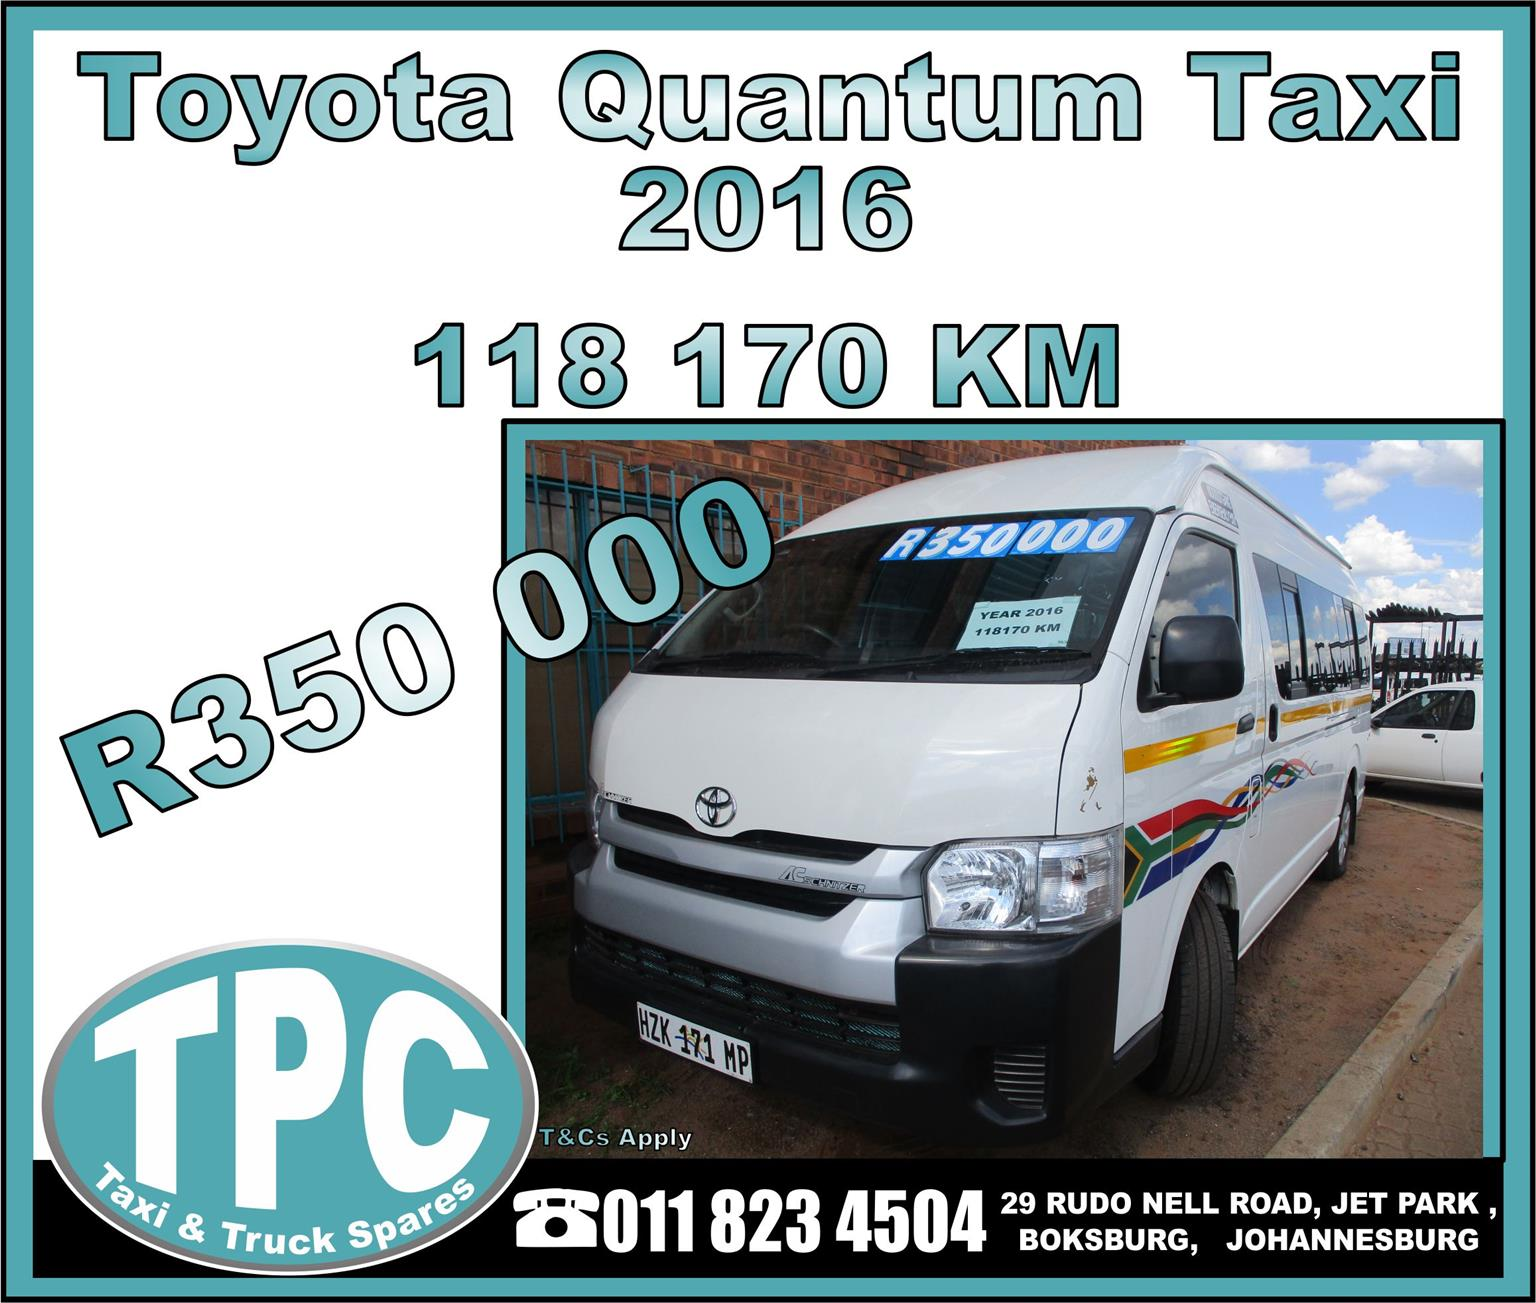 Toyota Quantum Taxi - 2016 - Excellent Condition - TPC Rebuild Yard.